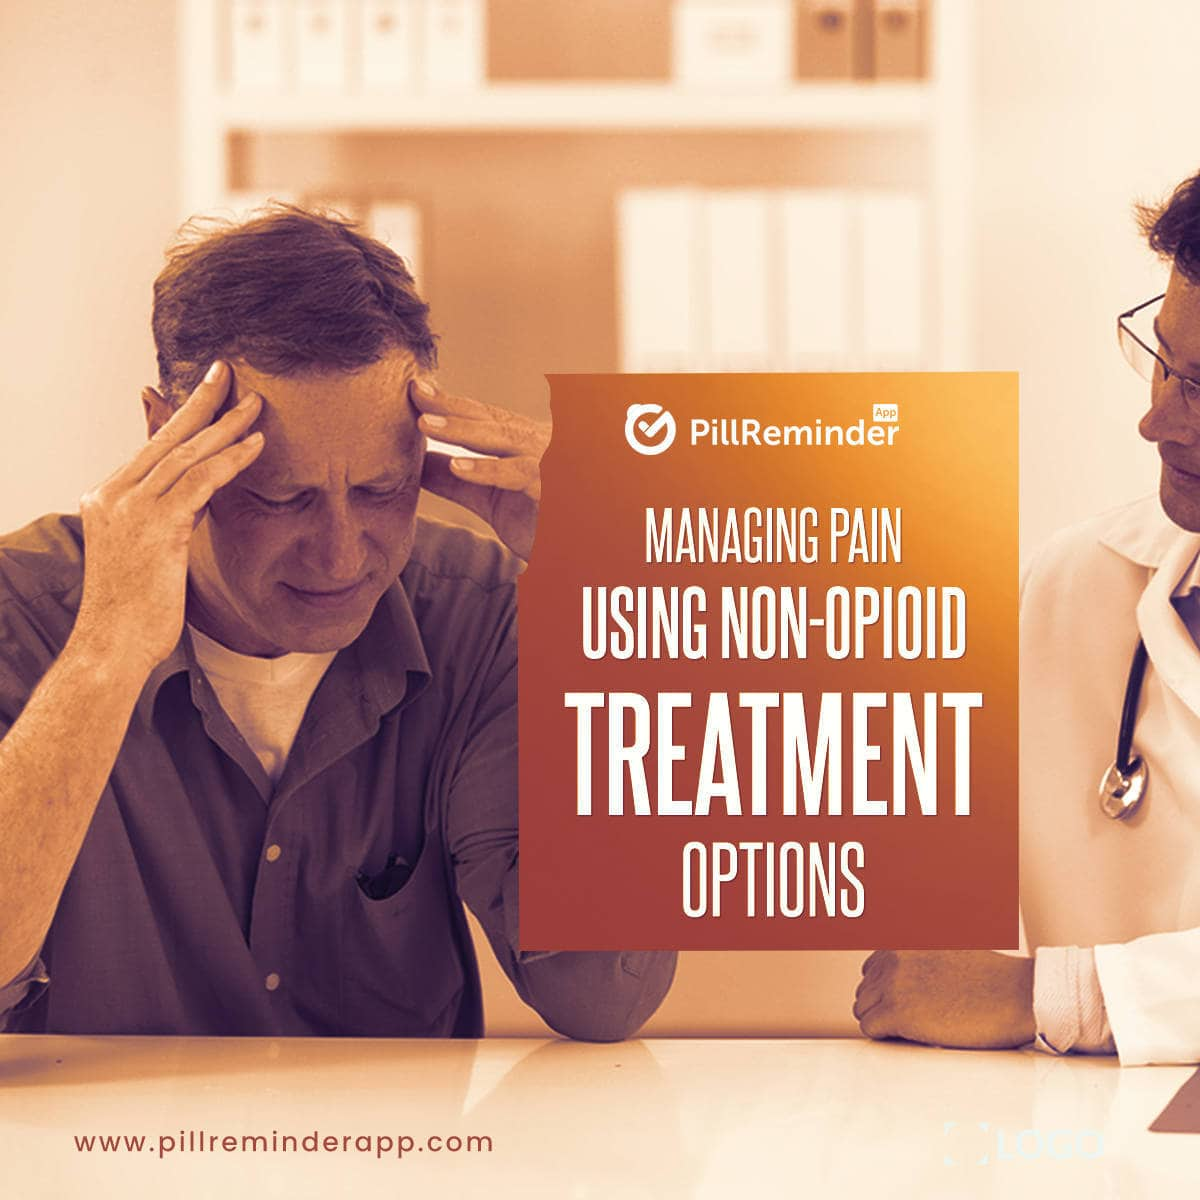 Managing Pain Using Non-Opioid Treatment Options